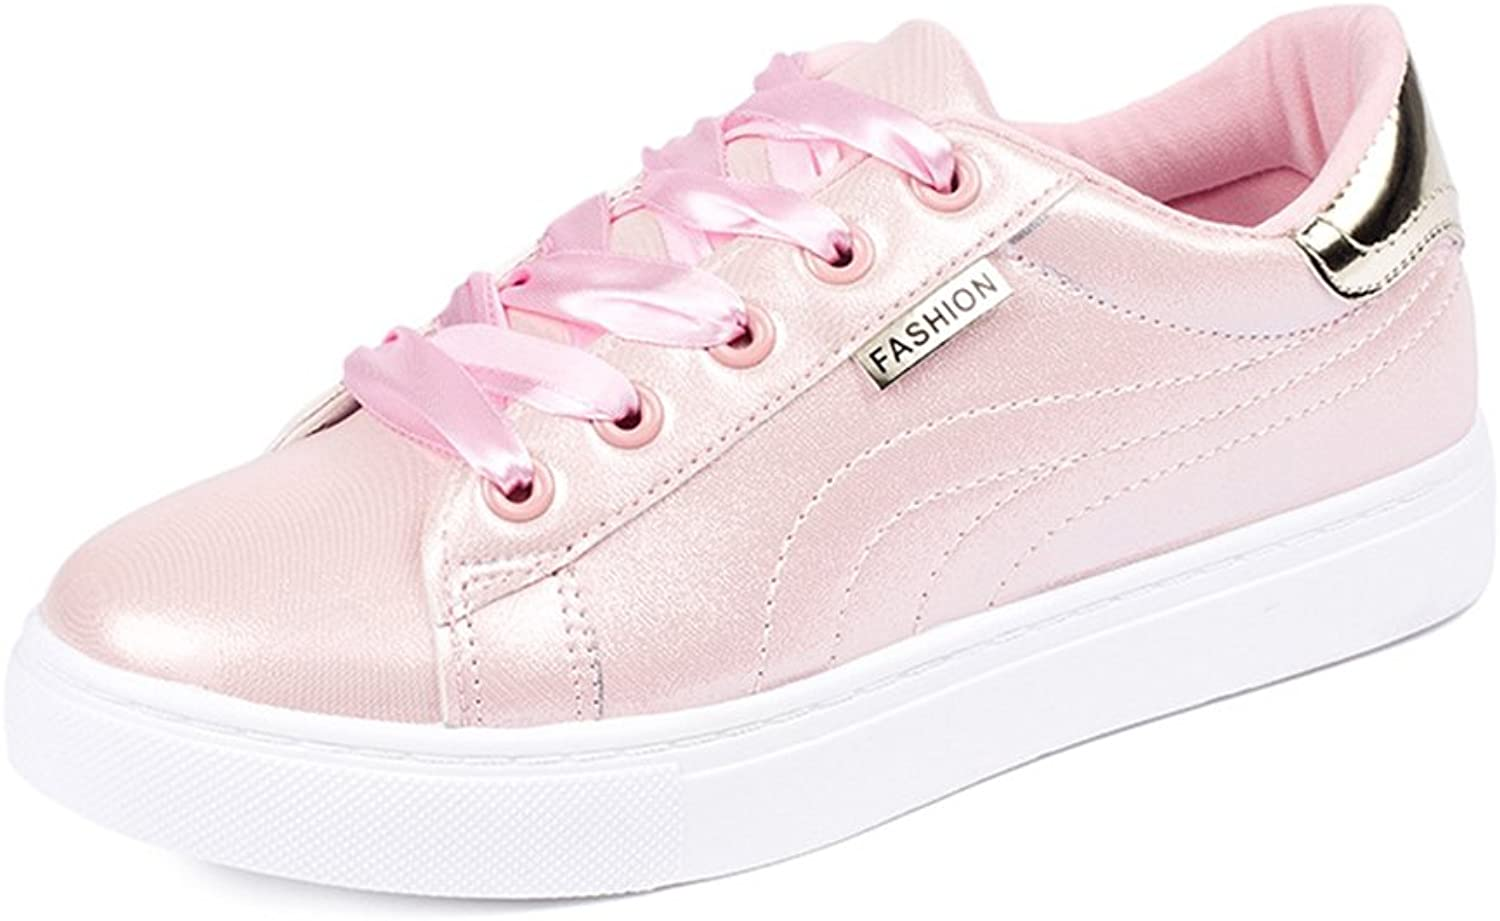 SUNNY Store Womens Fashion Canvas Sneakers Low Top Lace Up Walking shoes